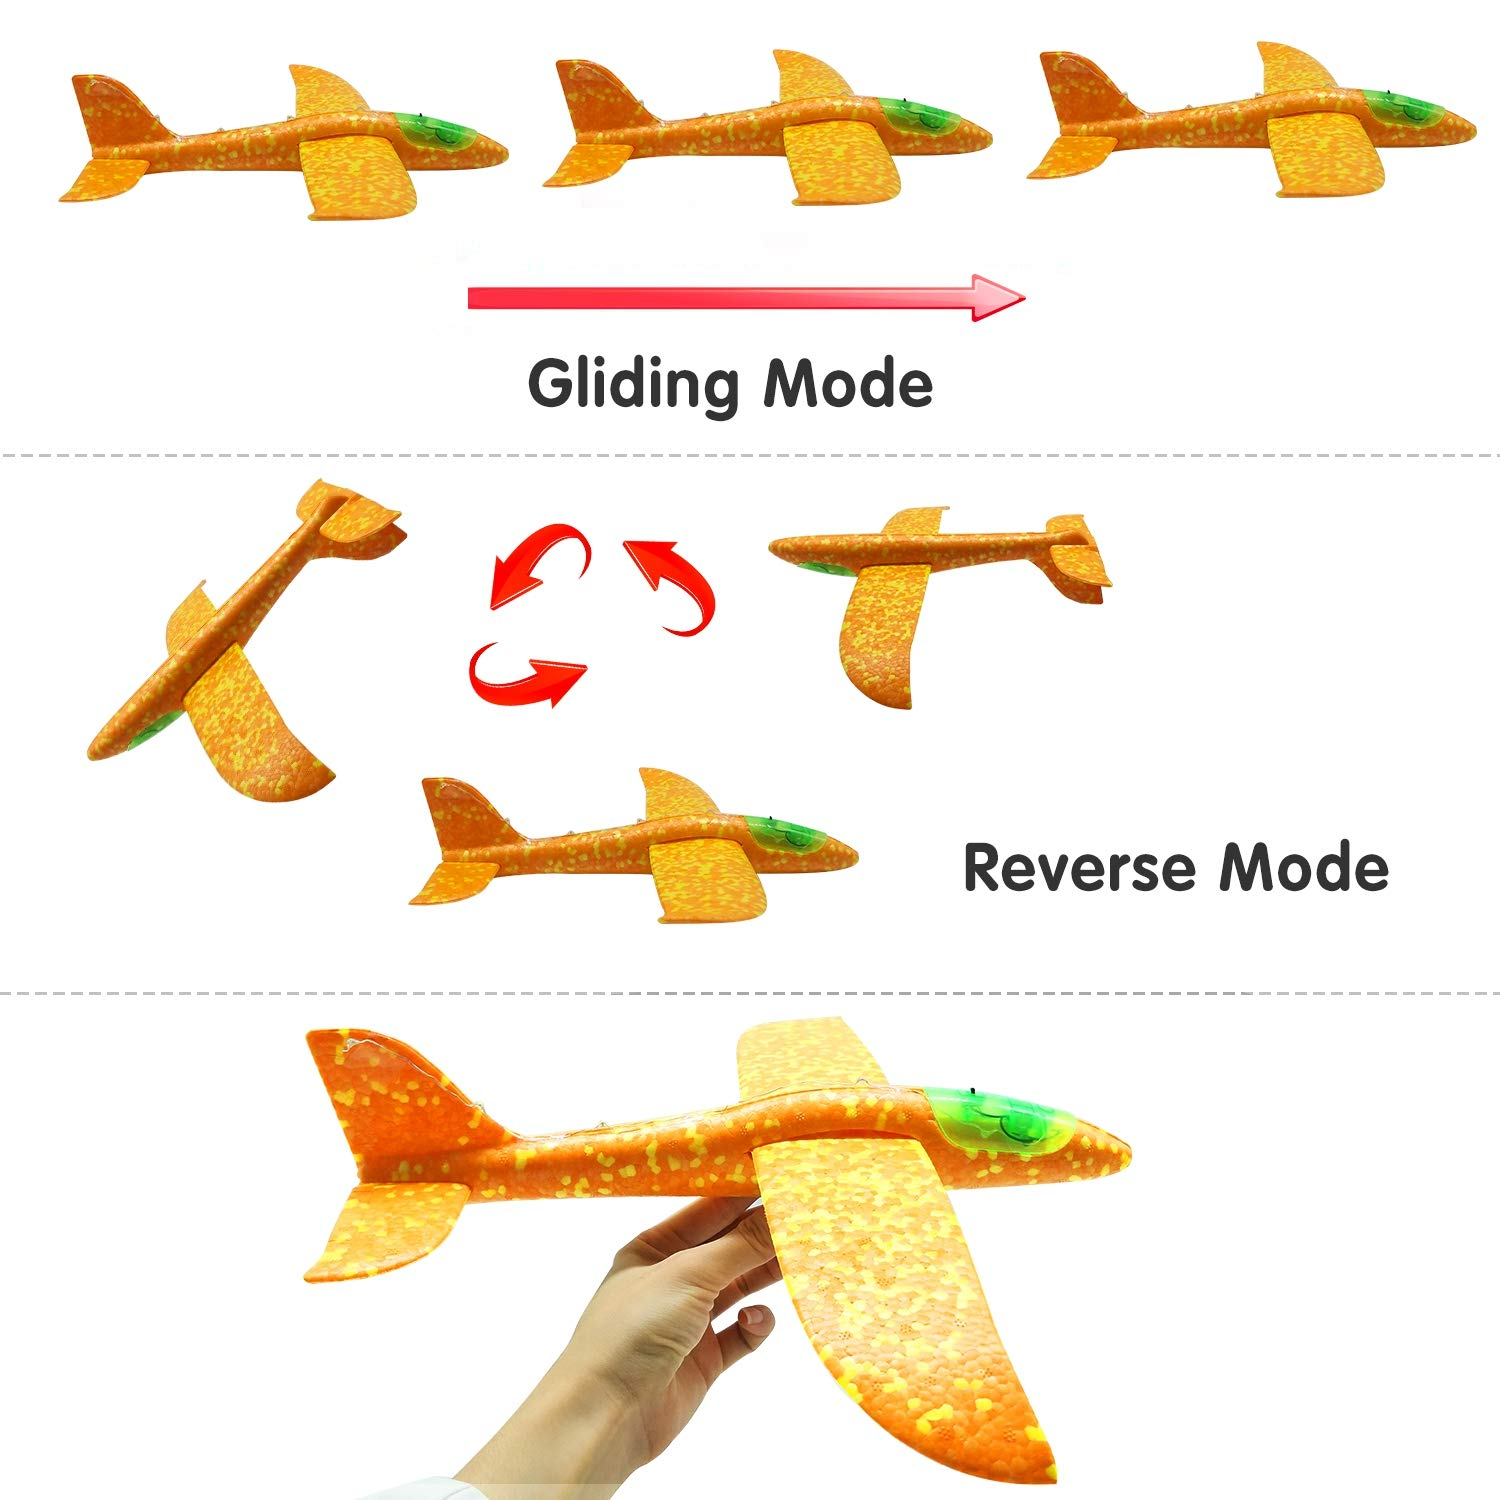 Airplane Toy for Kids, 3 Pack 13.5'' LED Light Up Throwing Foam Airplane Flying Aircraft Plane DIY Glider Aeroplane Model Jet Kit Flying Toys for Boys Girls Teens, Outdoor Sport Game Toys Party Favors by GreaSmart (Image #4)